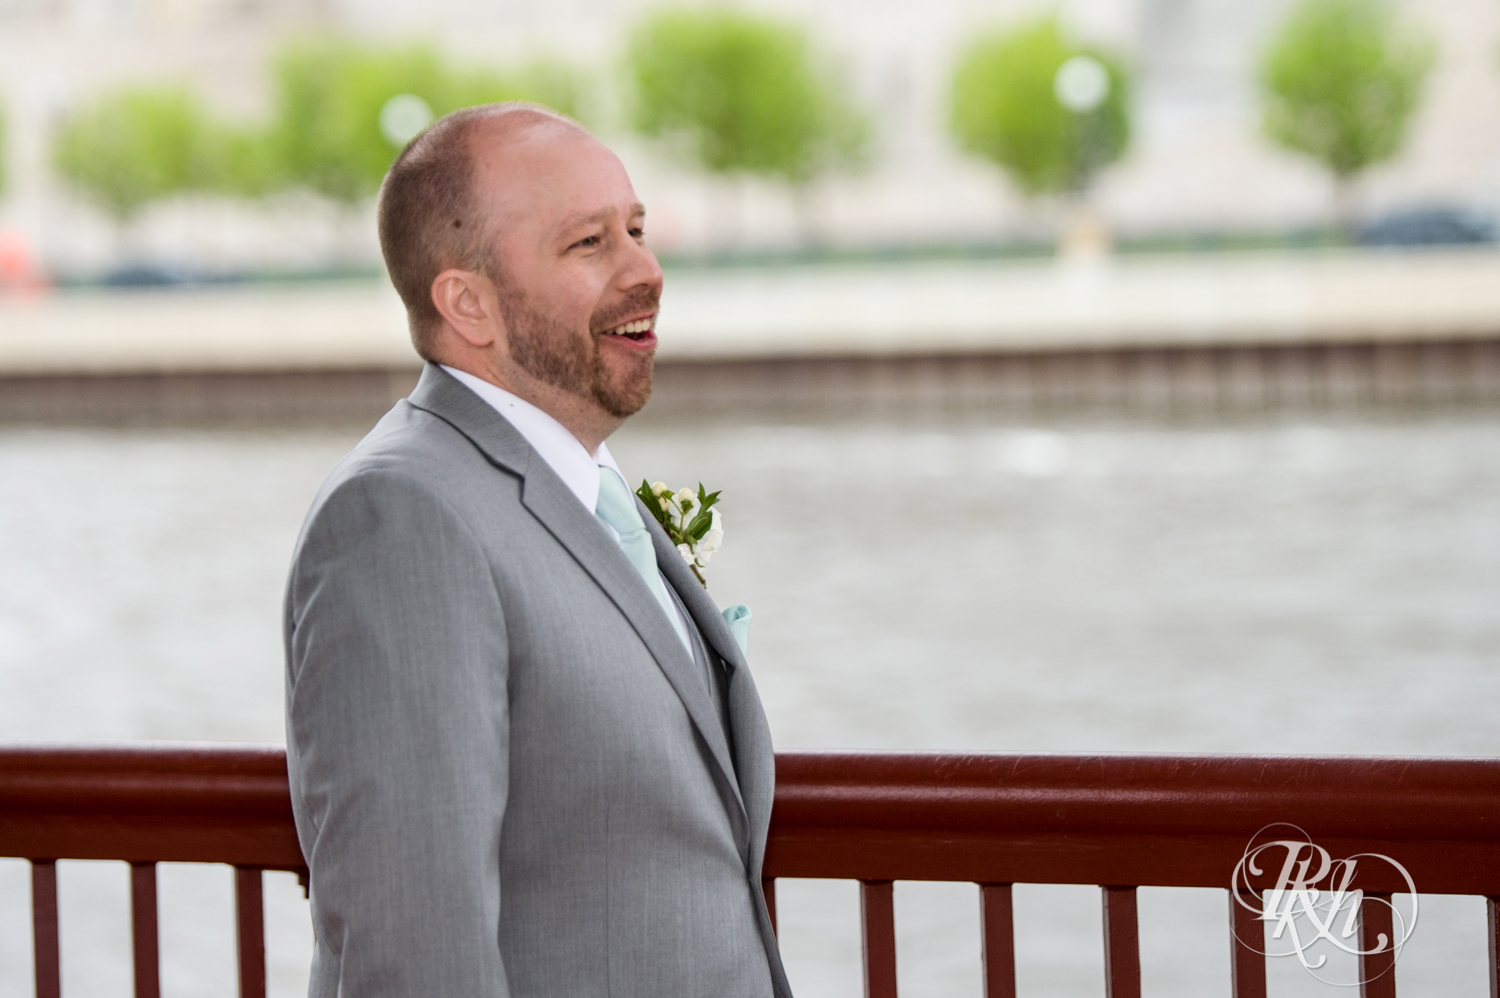 Shannon and Brian - Minnesota Wedding Photography - Raspberry Island - Minnesota Boat Club - RKH Images - Blog  (16 of 60).jpg